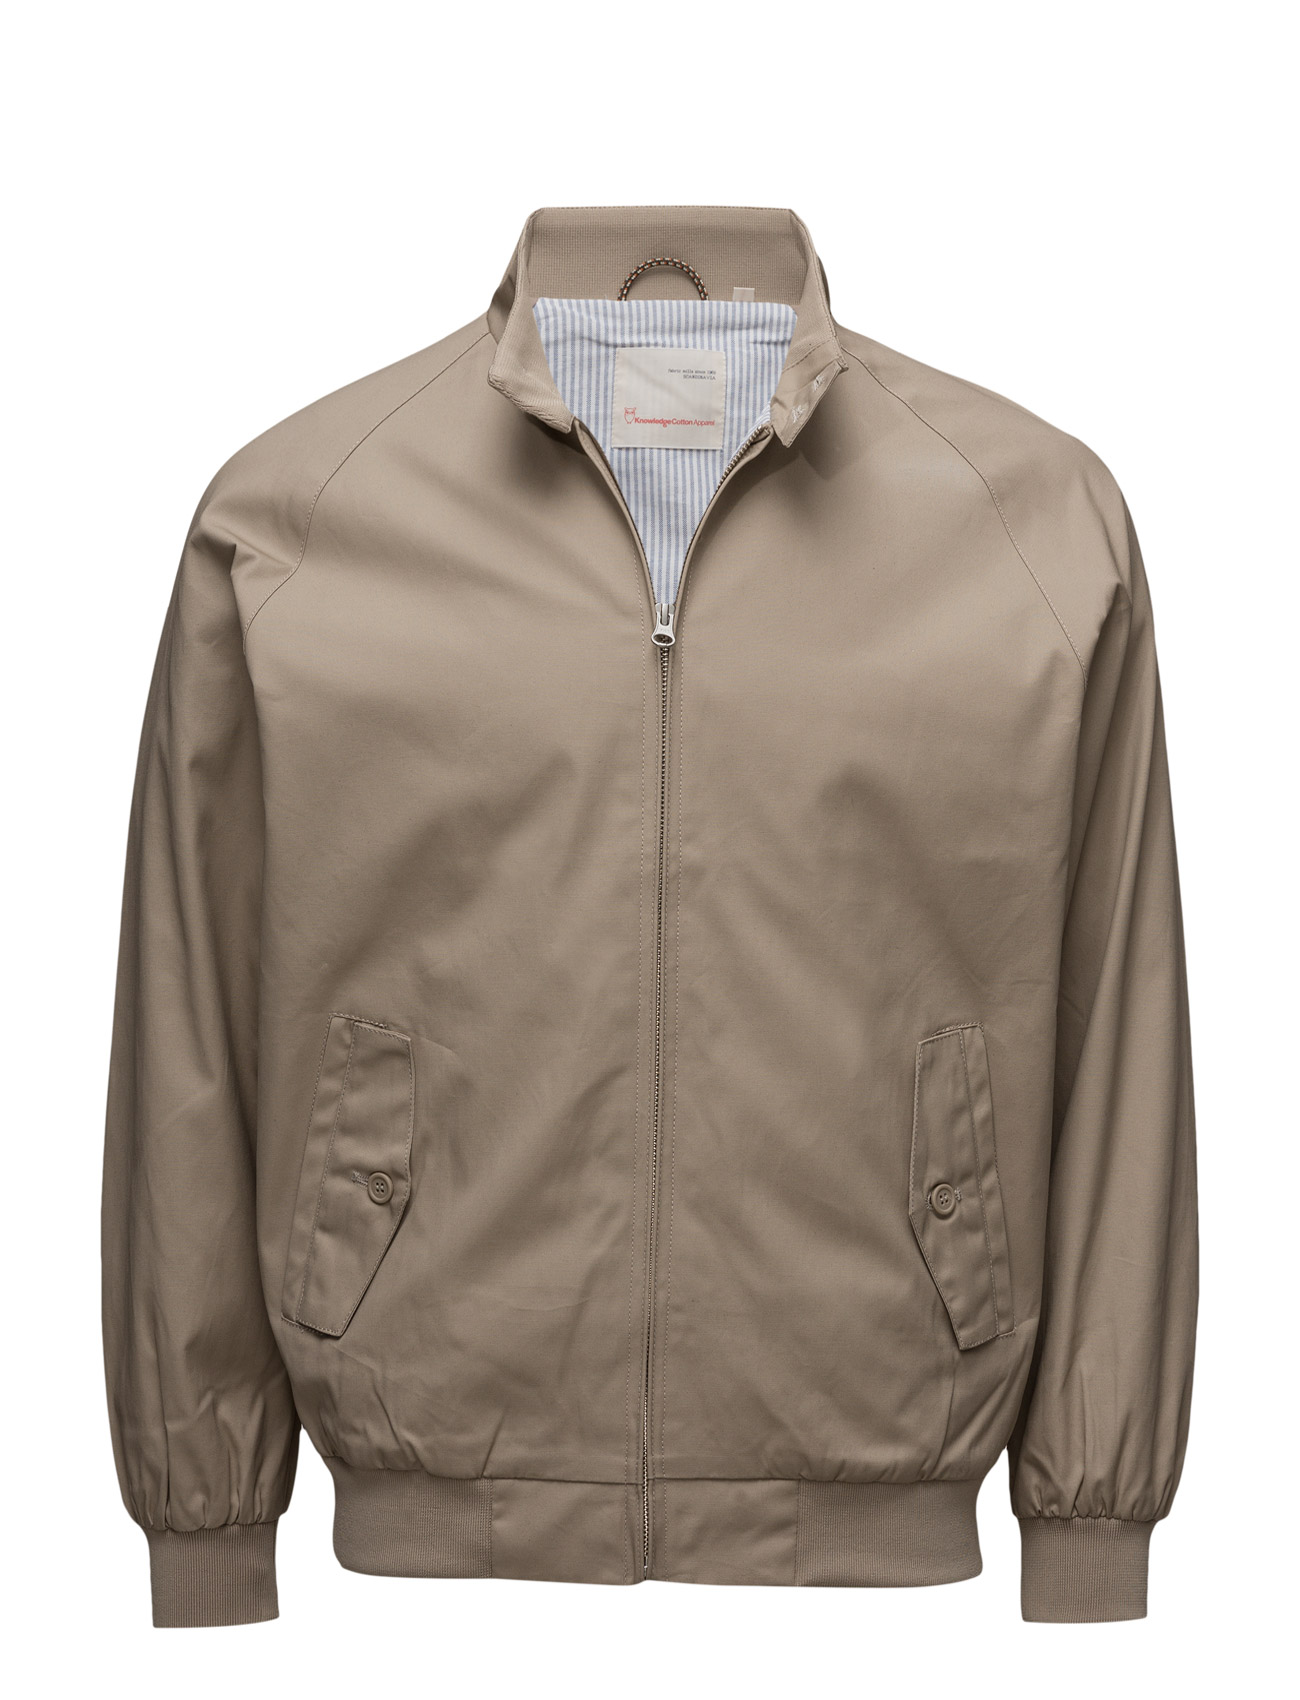 Catalina Jacket W/Stripped Oxford L - Knowledge Cotton Apparel